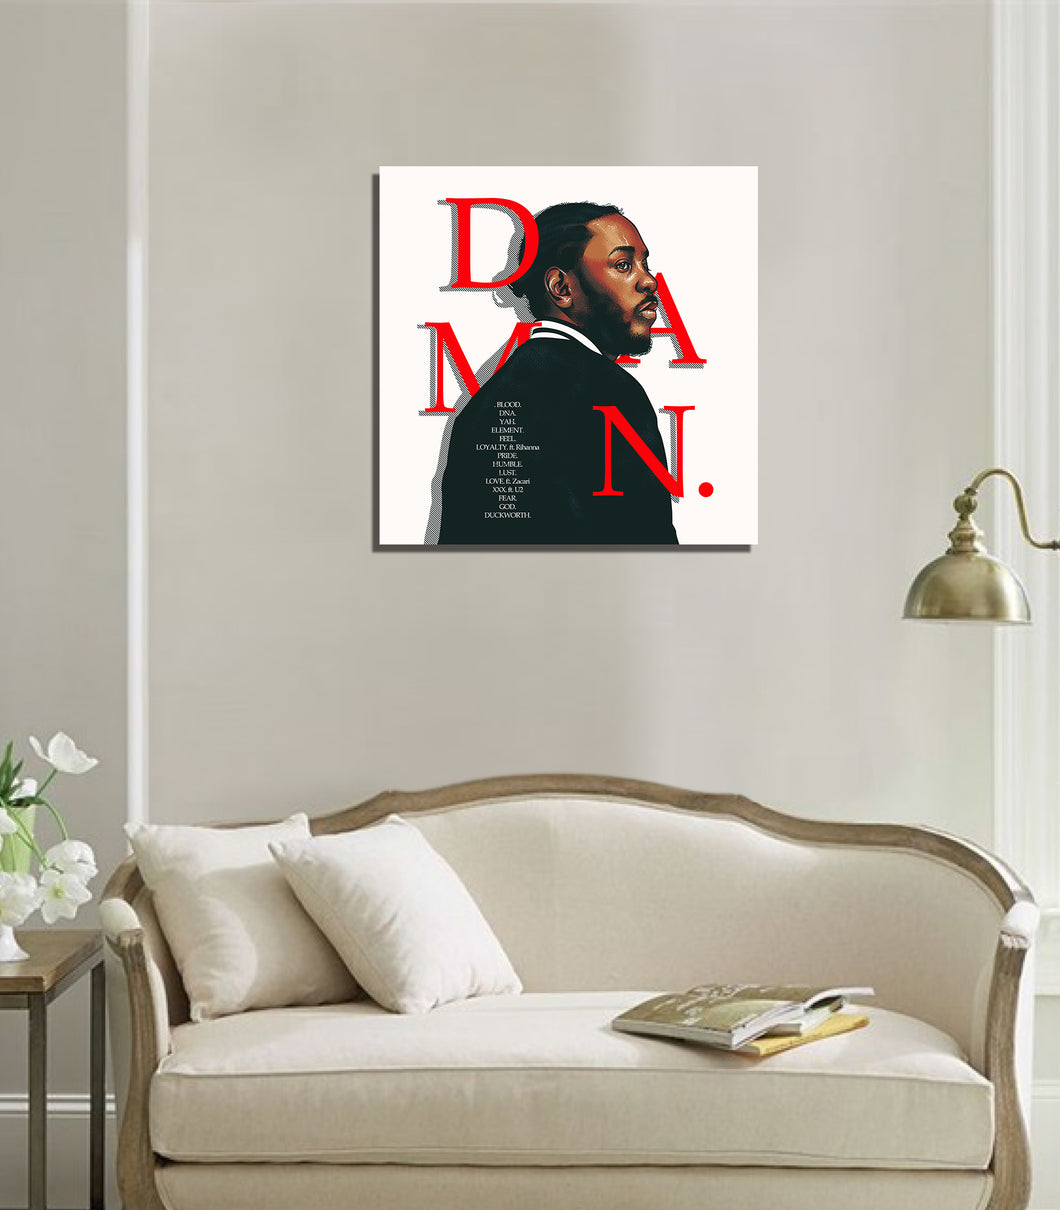 Kendrick 3 artwork by Eds G